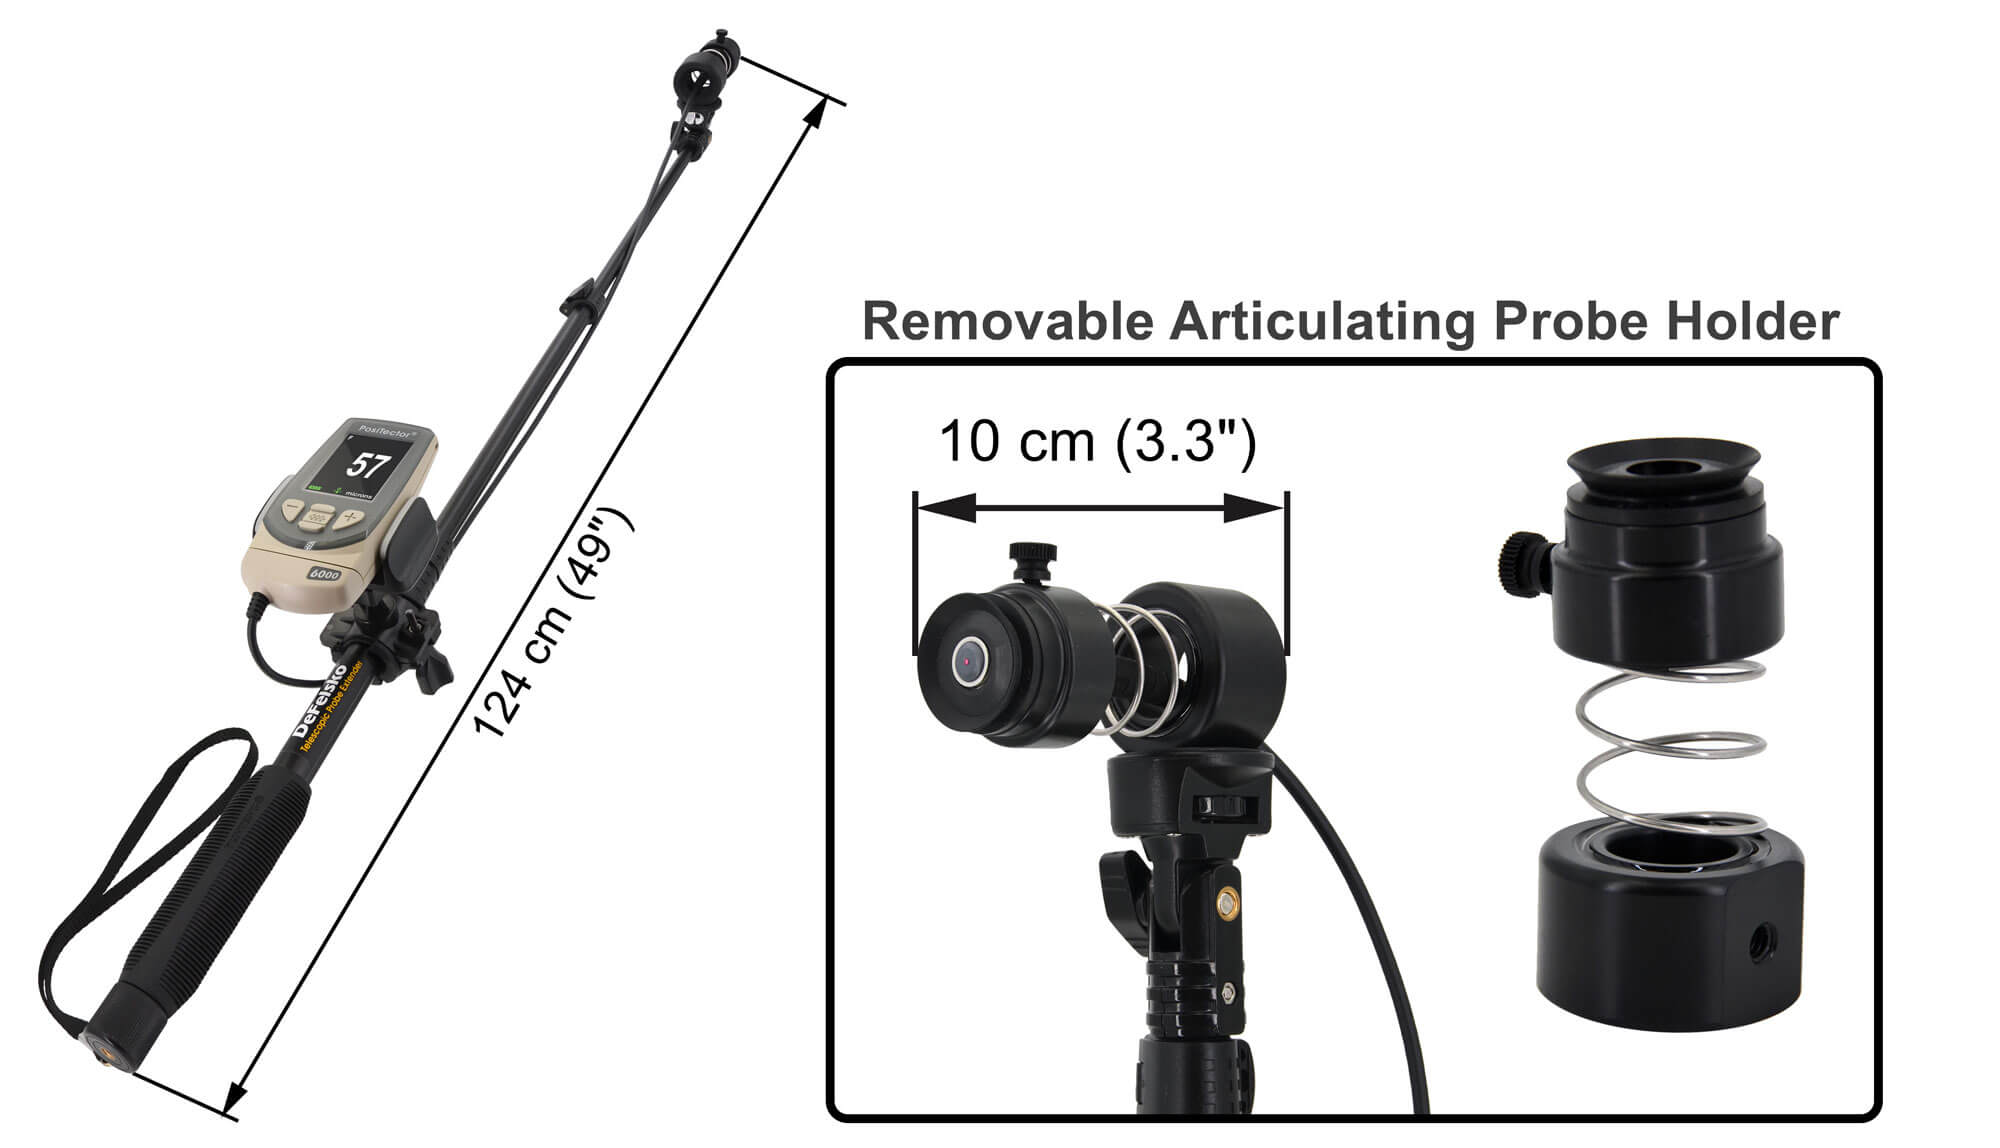 PosiTector 6000 Telescopic Probe Extender holder